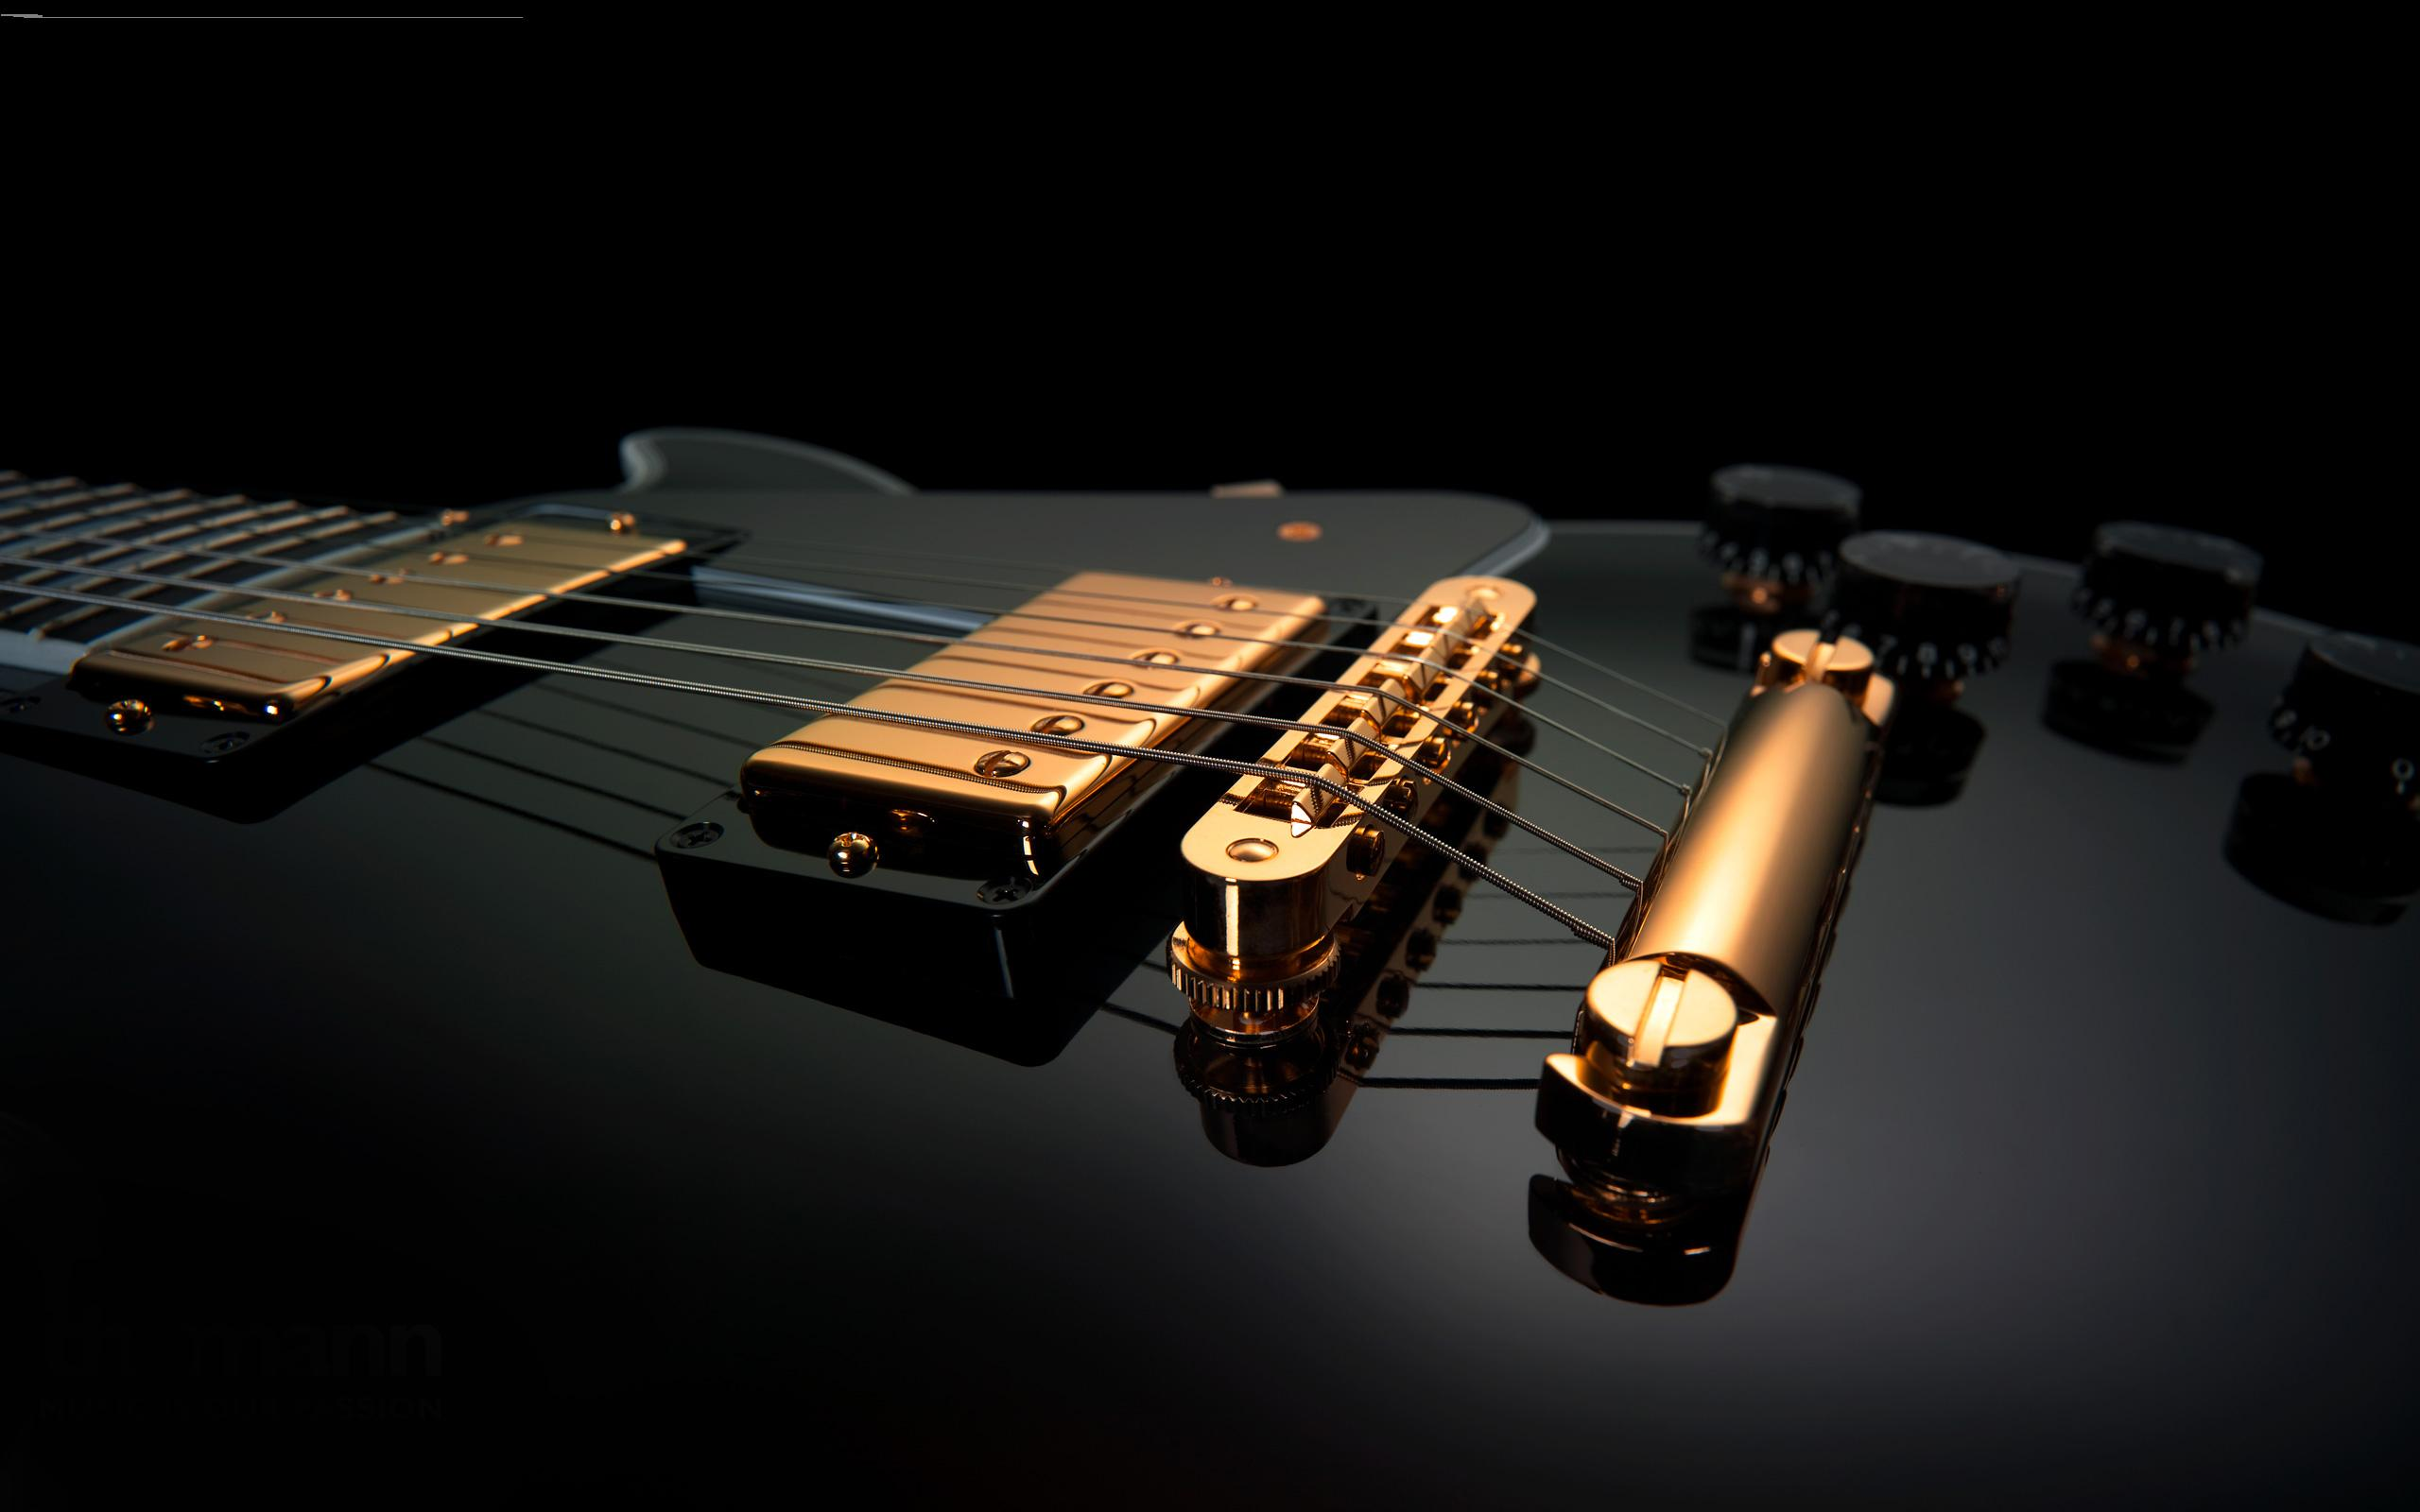 Guitar Desktop Wallpaper